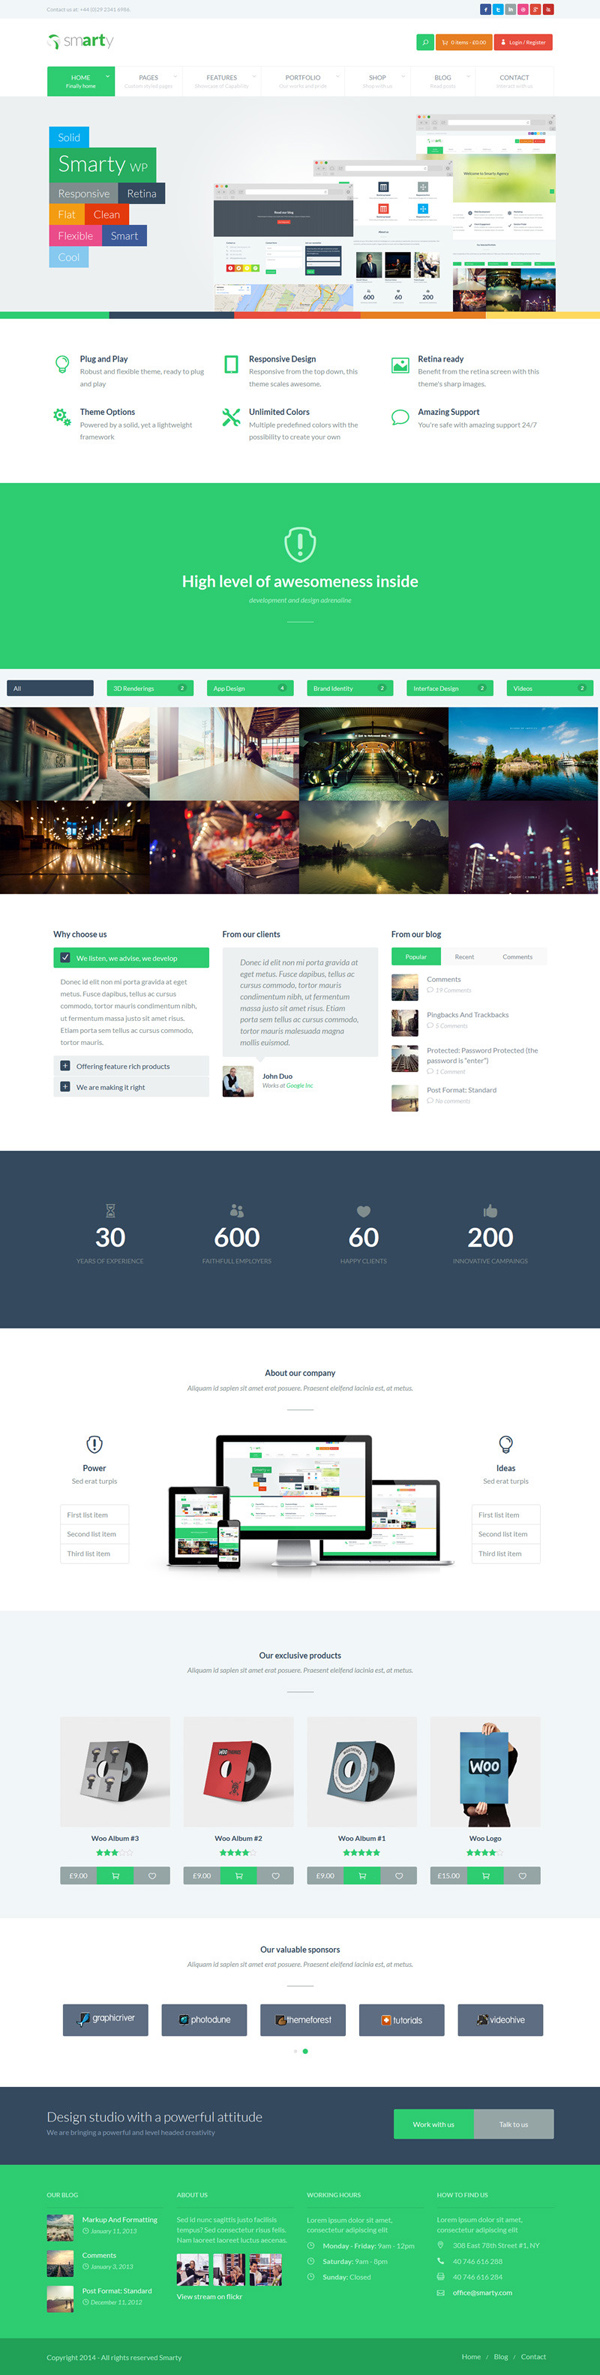 Smarty – Portfolio & Shop WordPress Theme